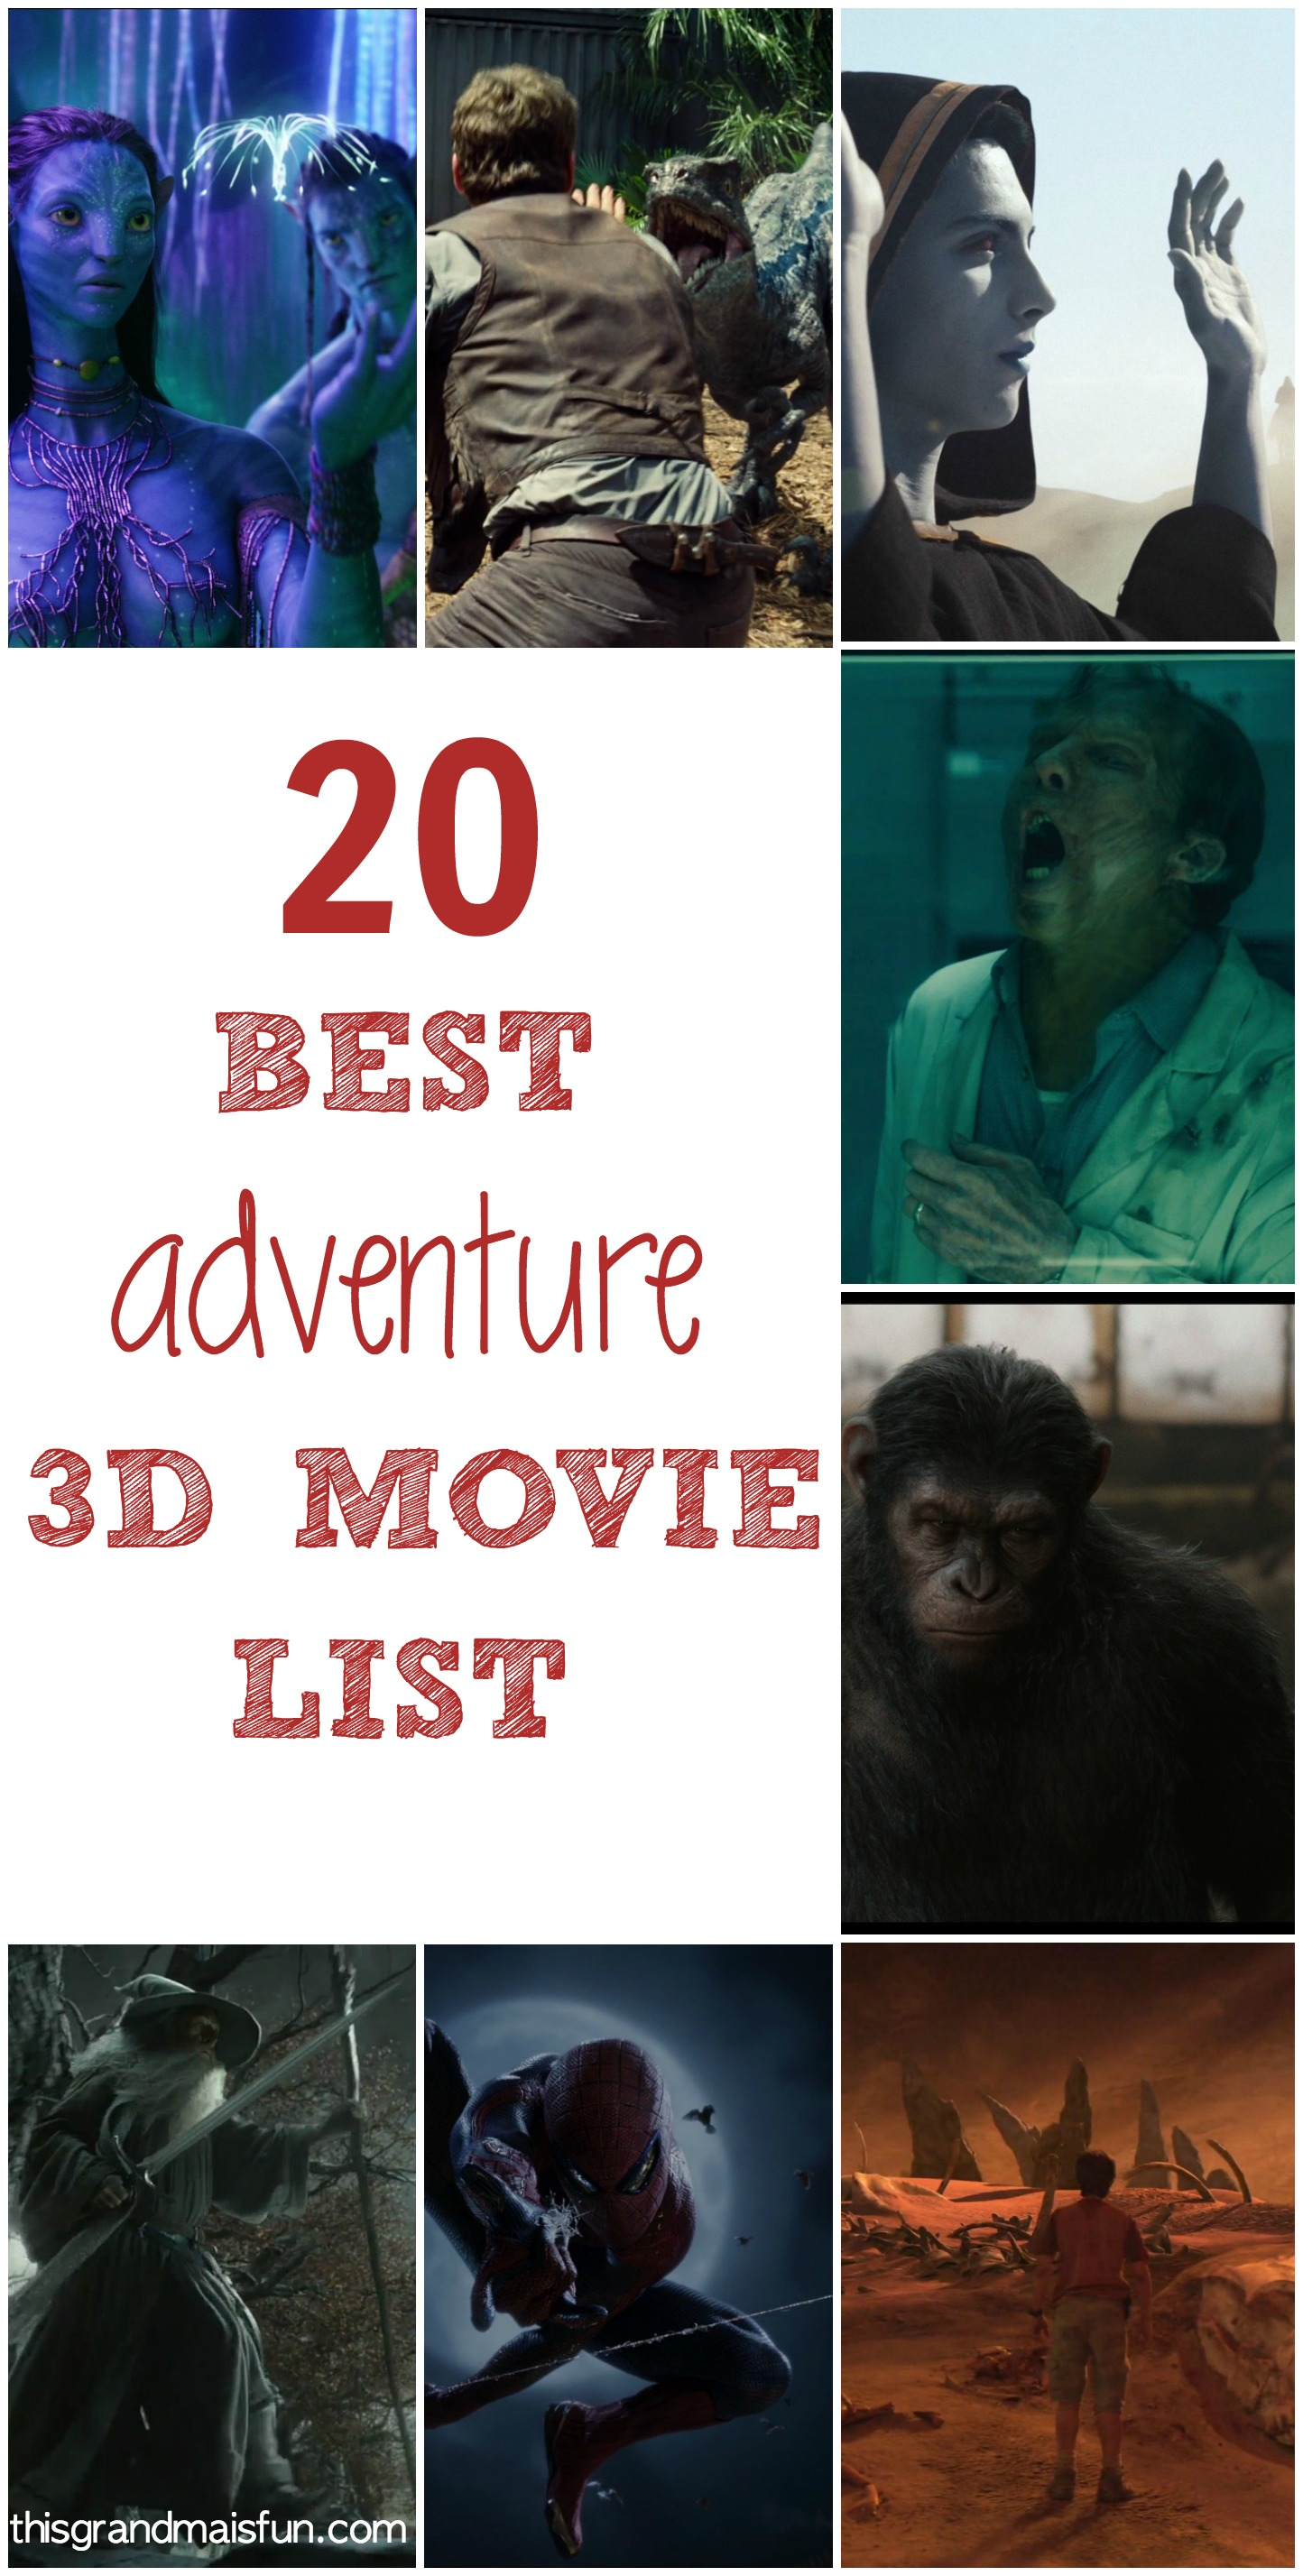 adventure-3d-movie-list